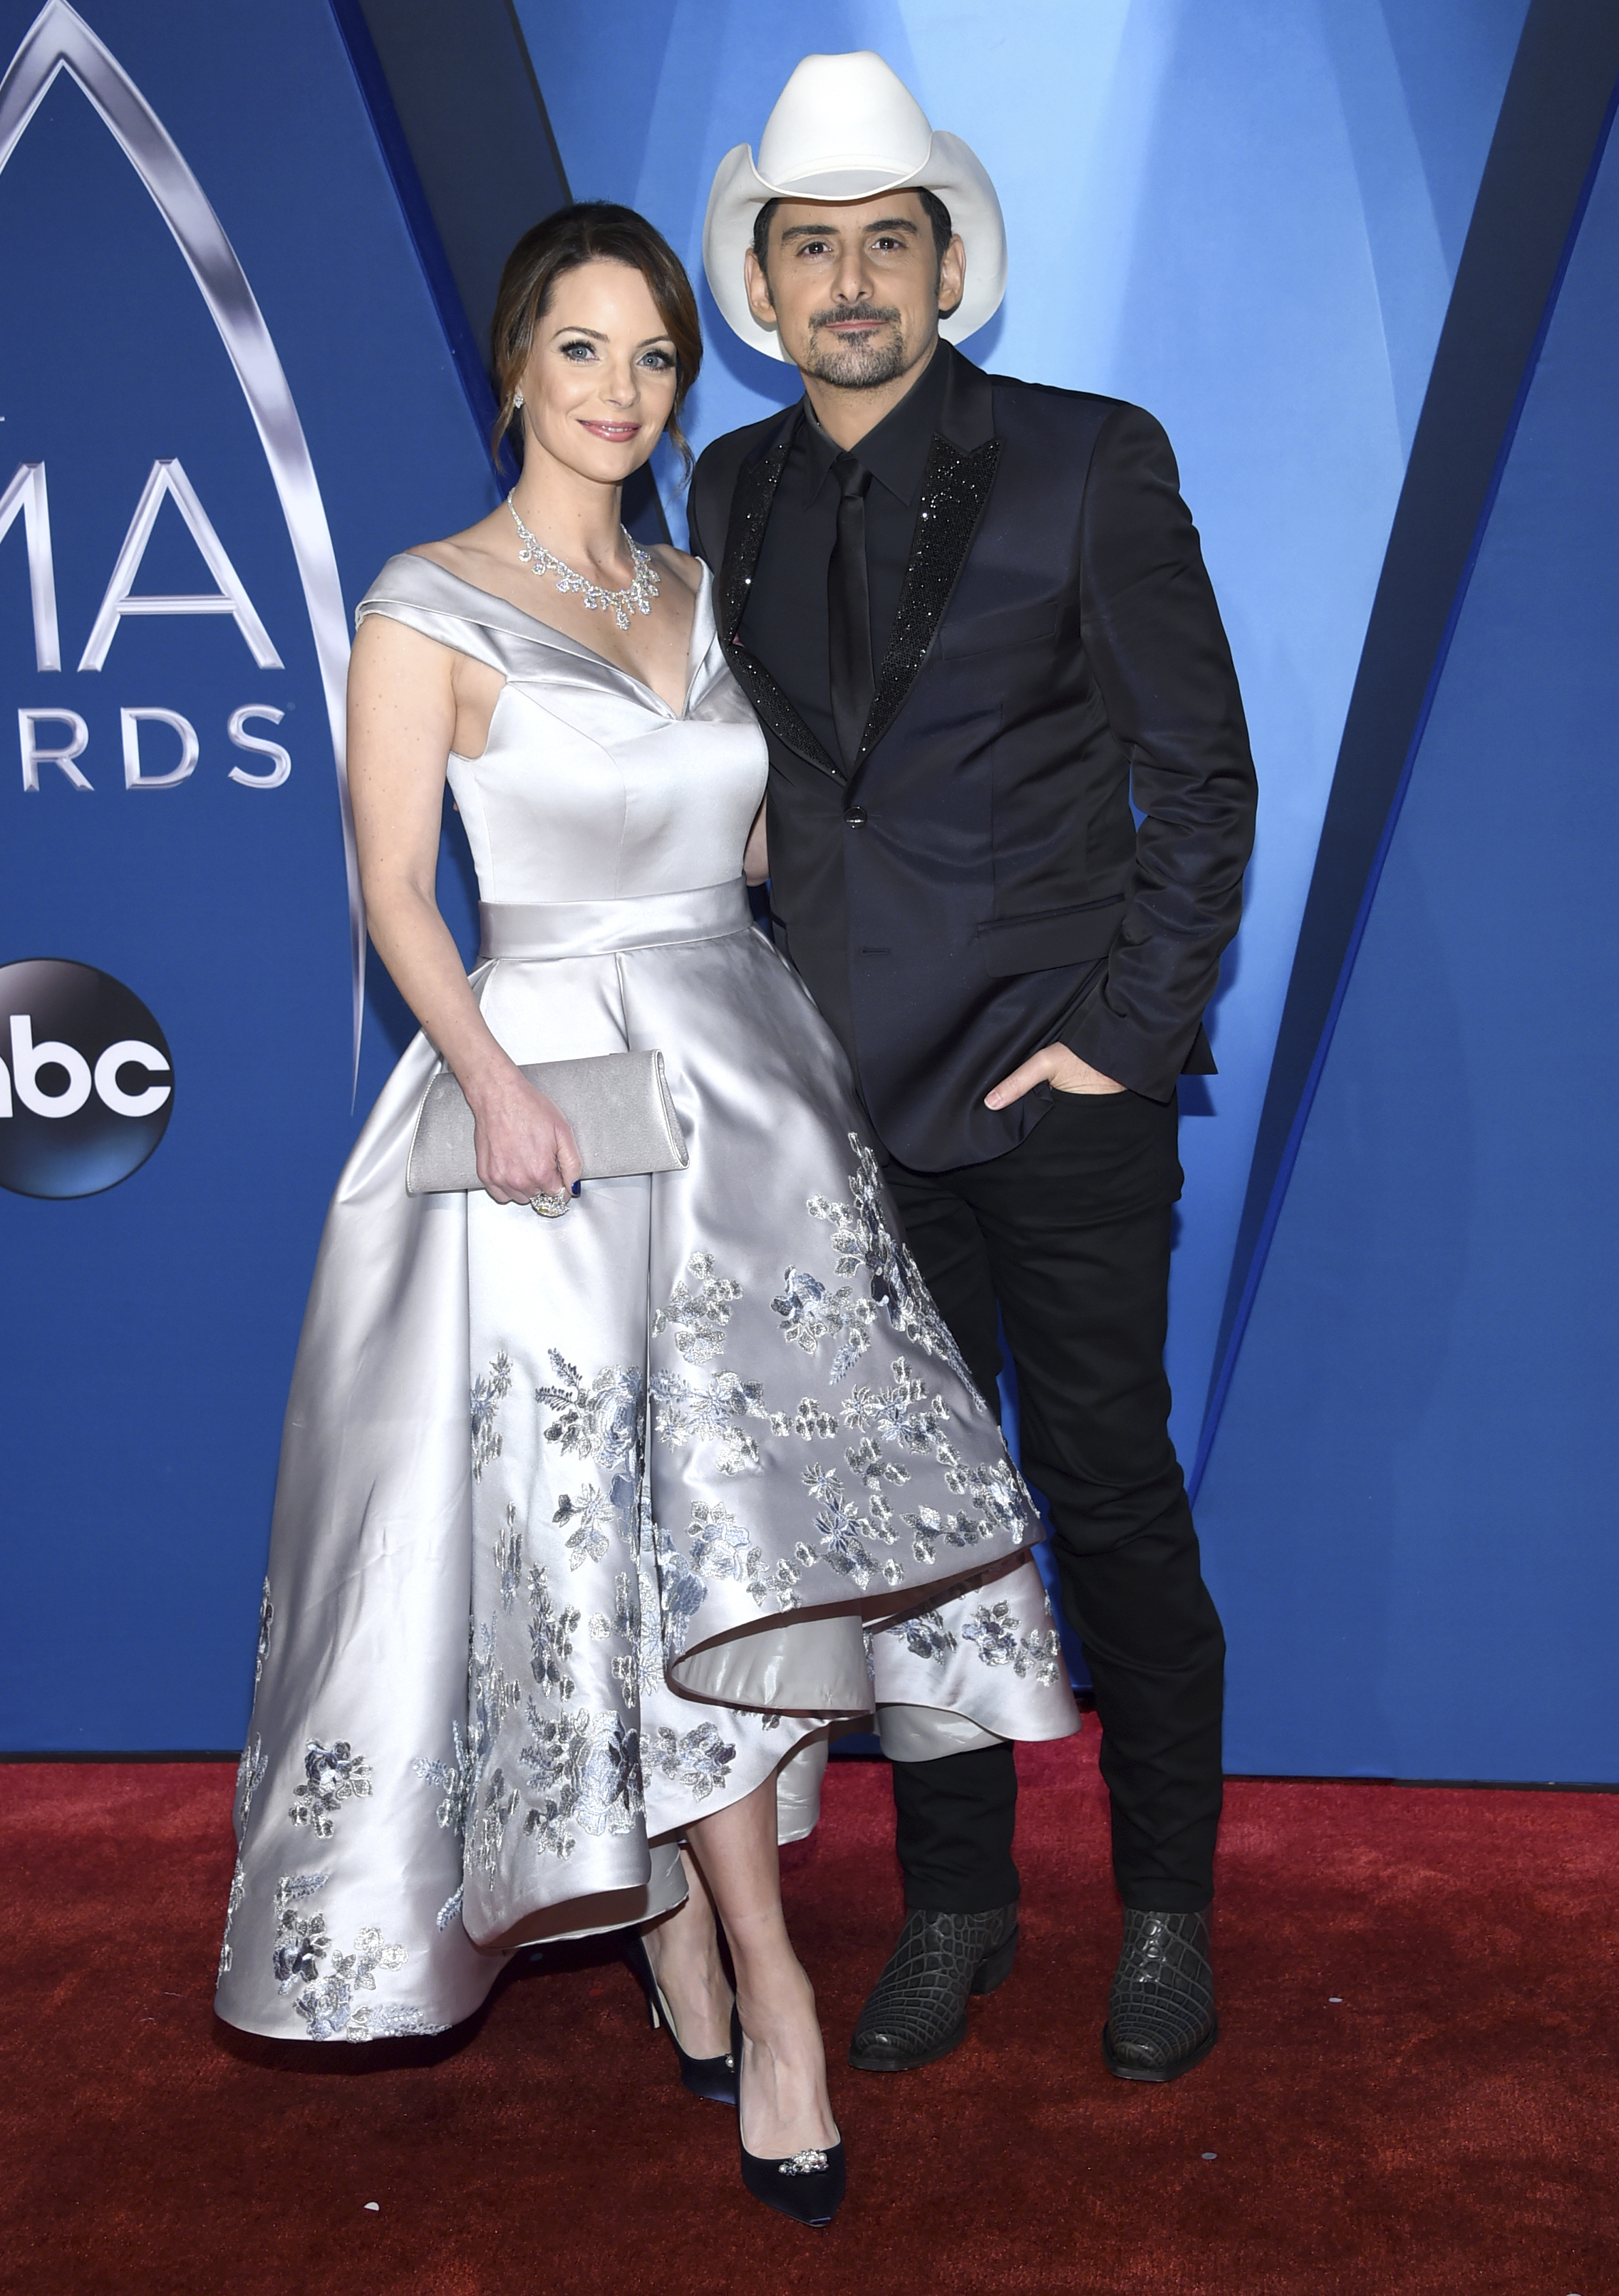 Kimberly Williams-Paisley and Brad Paisley arrive at the 51st annual CMA Awards in 2017 in Nashville, Tennessee.